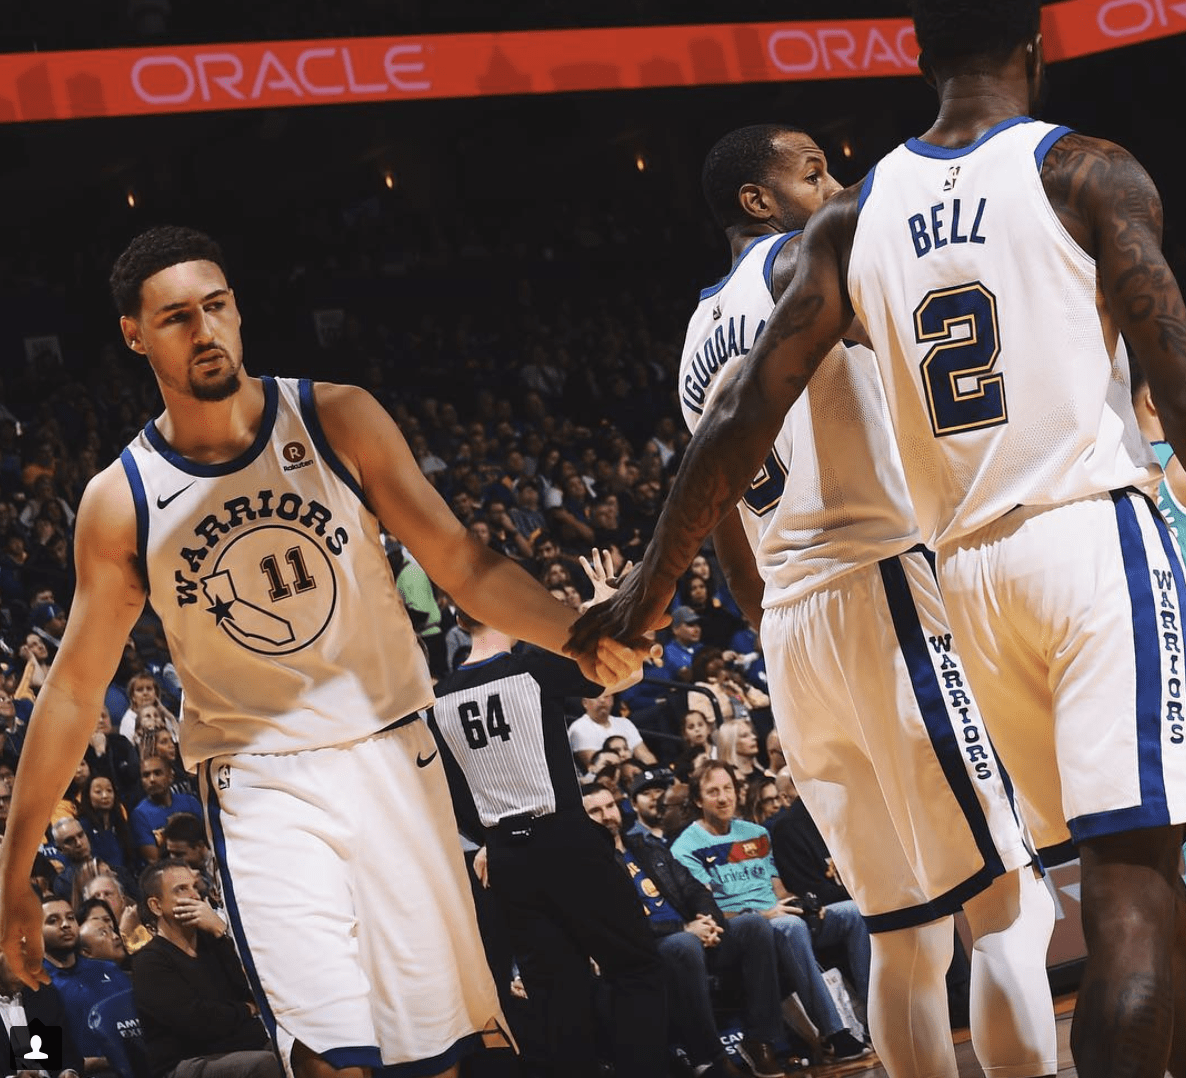 Golden State Warriors Fall Short To The Charlotte Hornets At Oracle Arena In Oakland